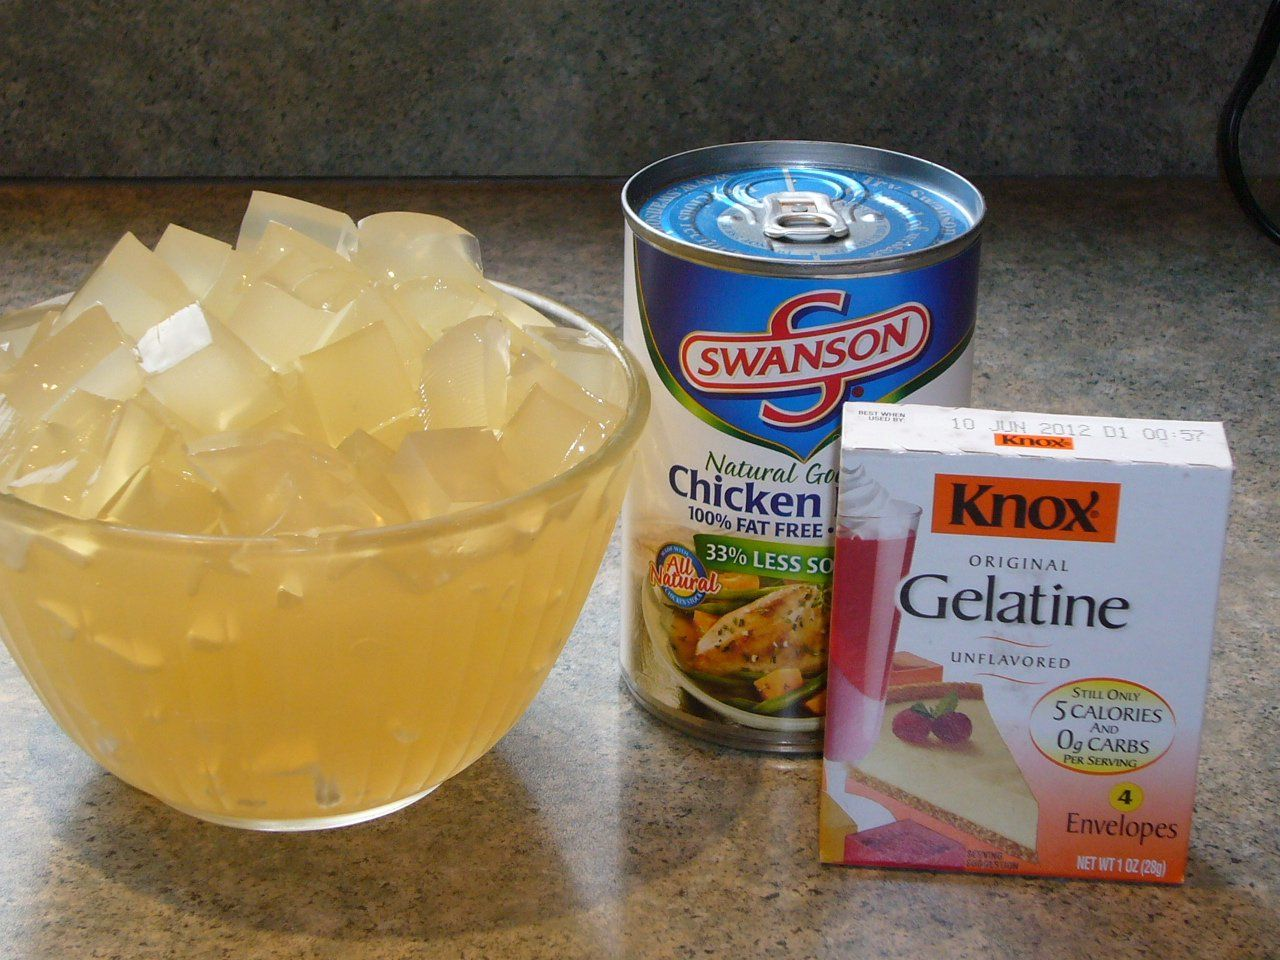 1 cup cold low sodium chicken broth 4 packages of Knox